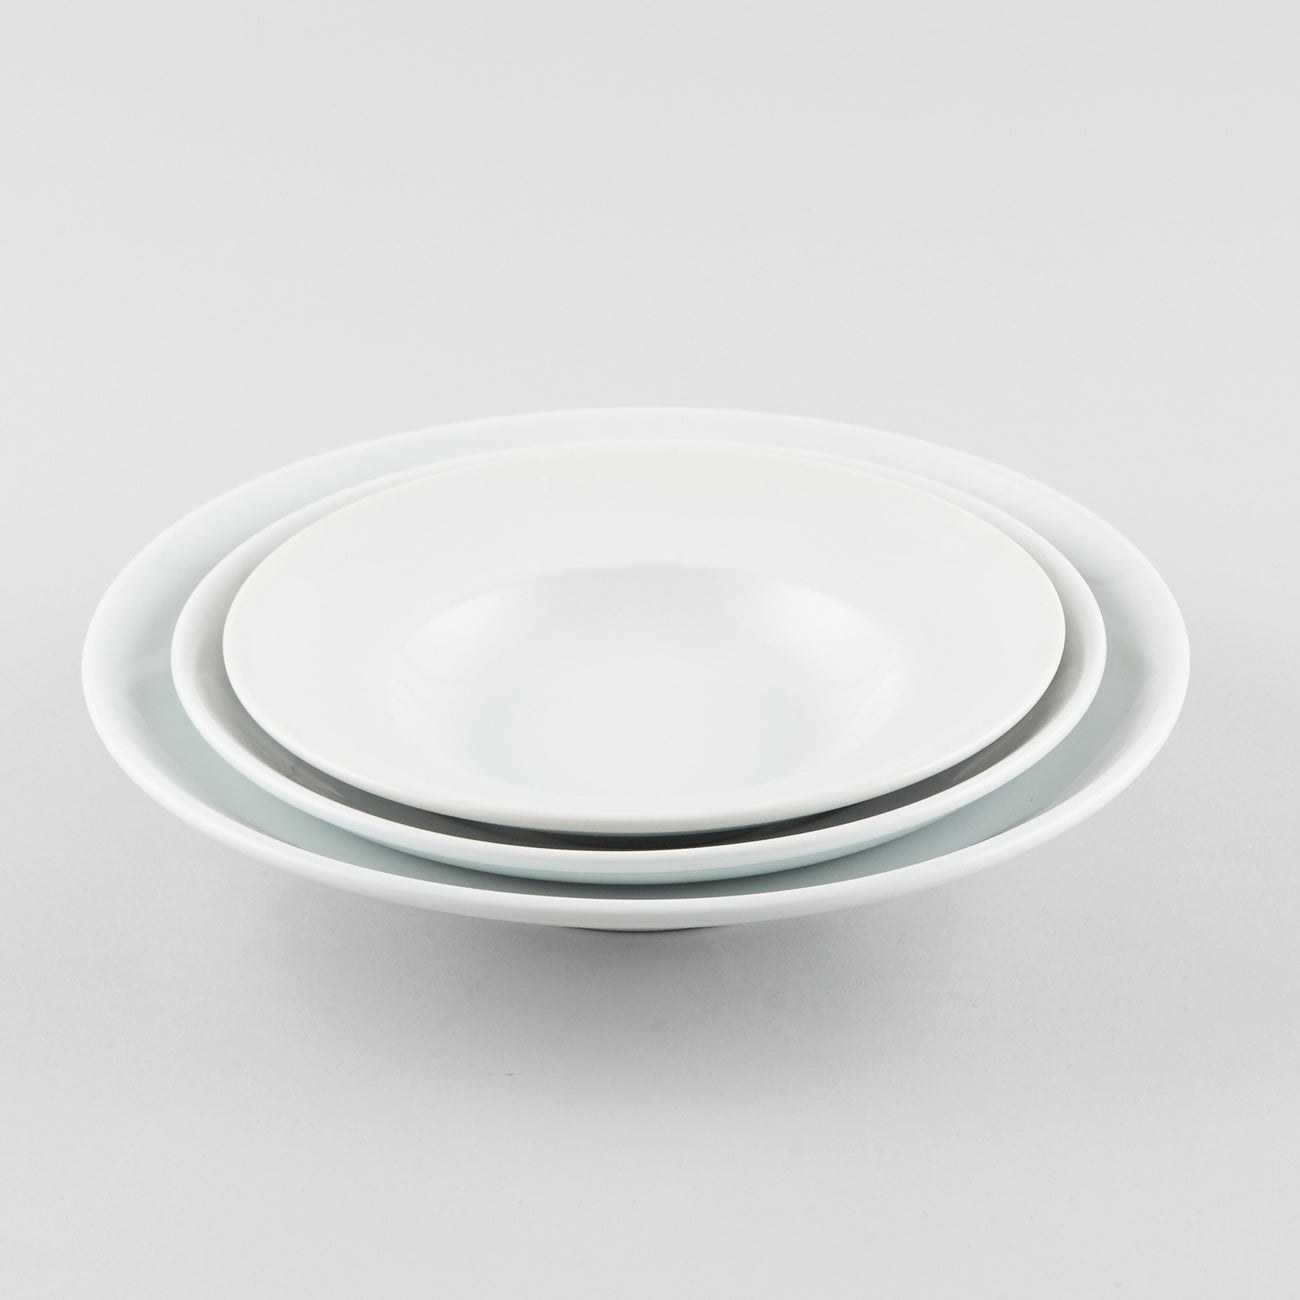 General Round Shallow Bowl with Rim 7 oz (S)